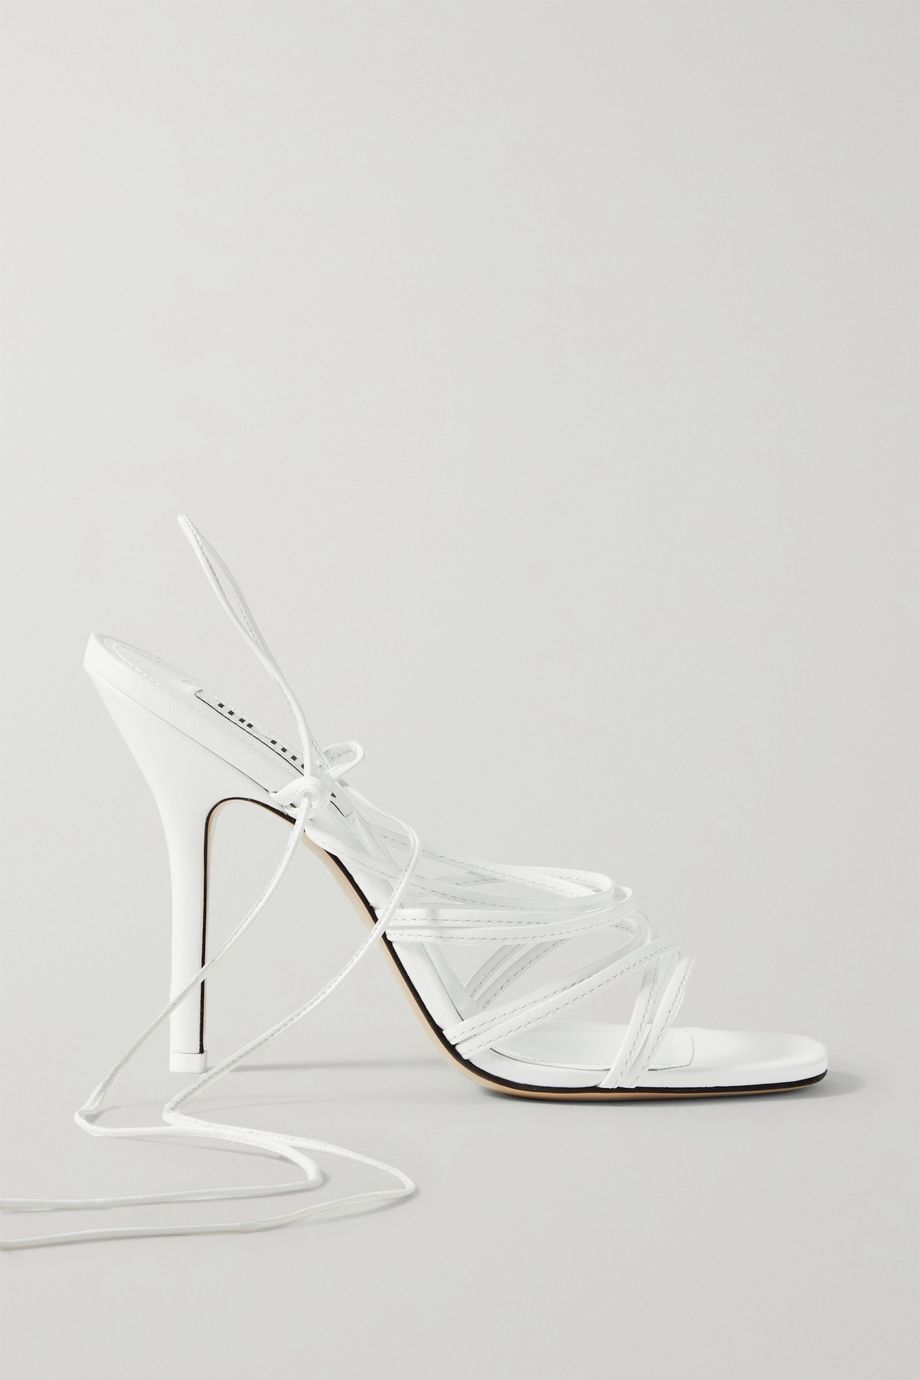 The Attico Fiona leather sandals